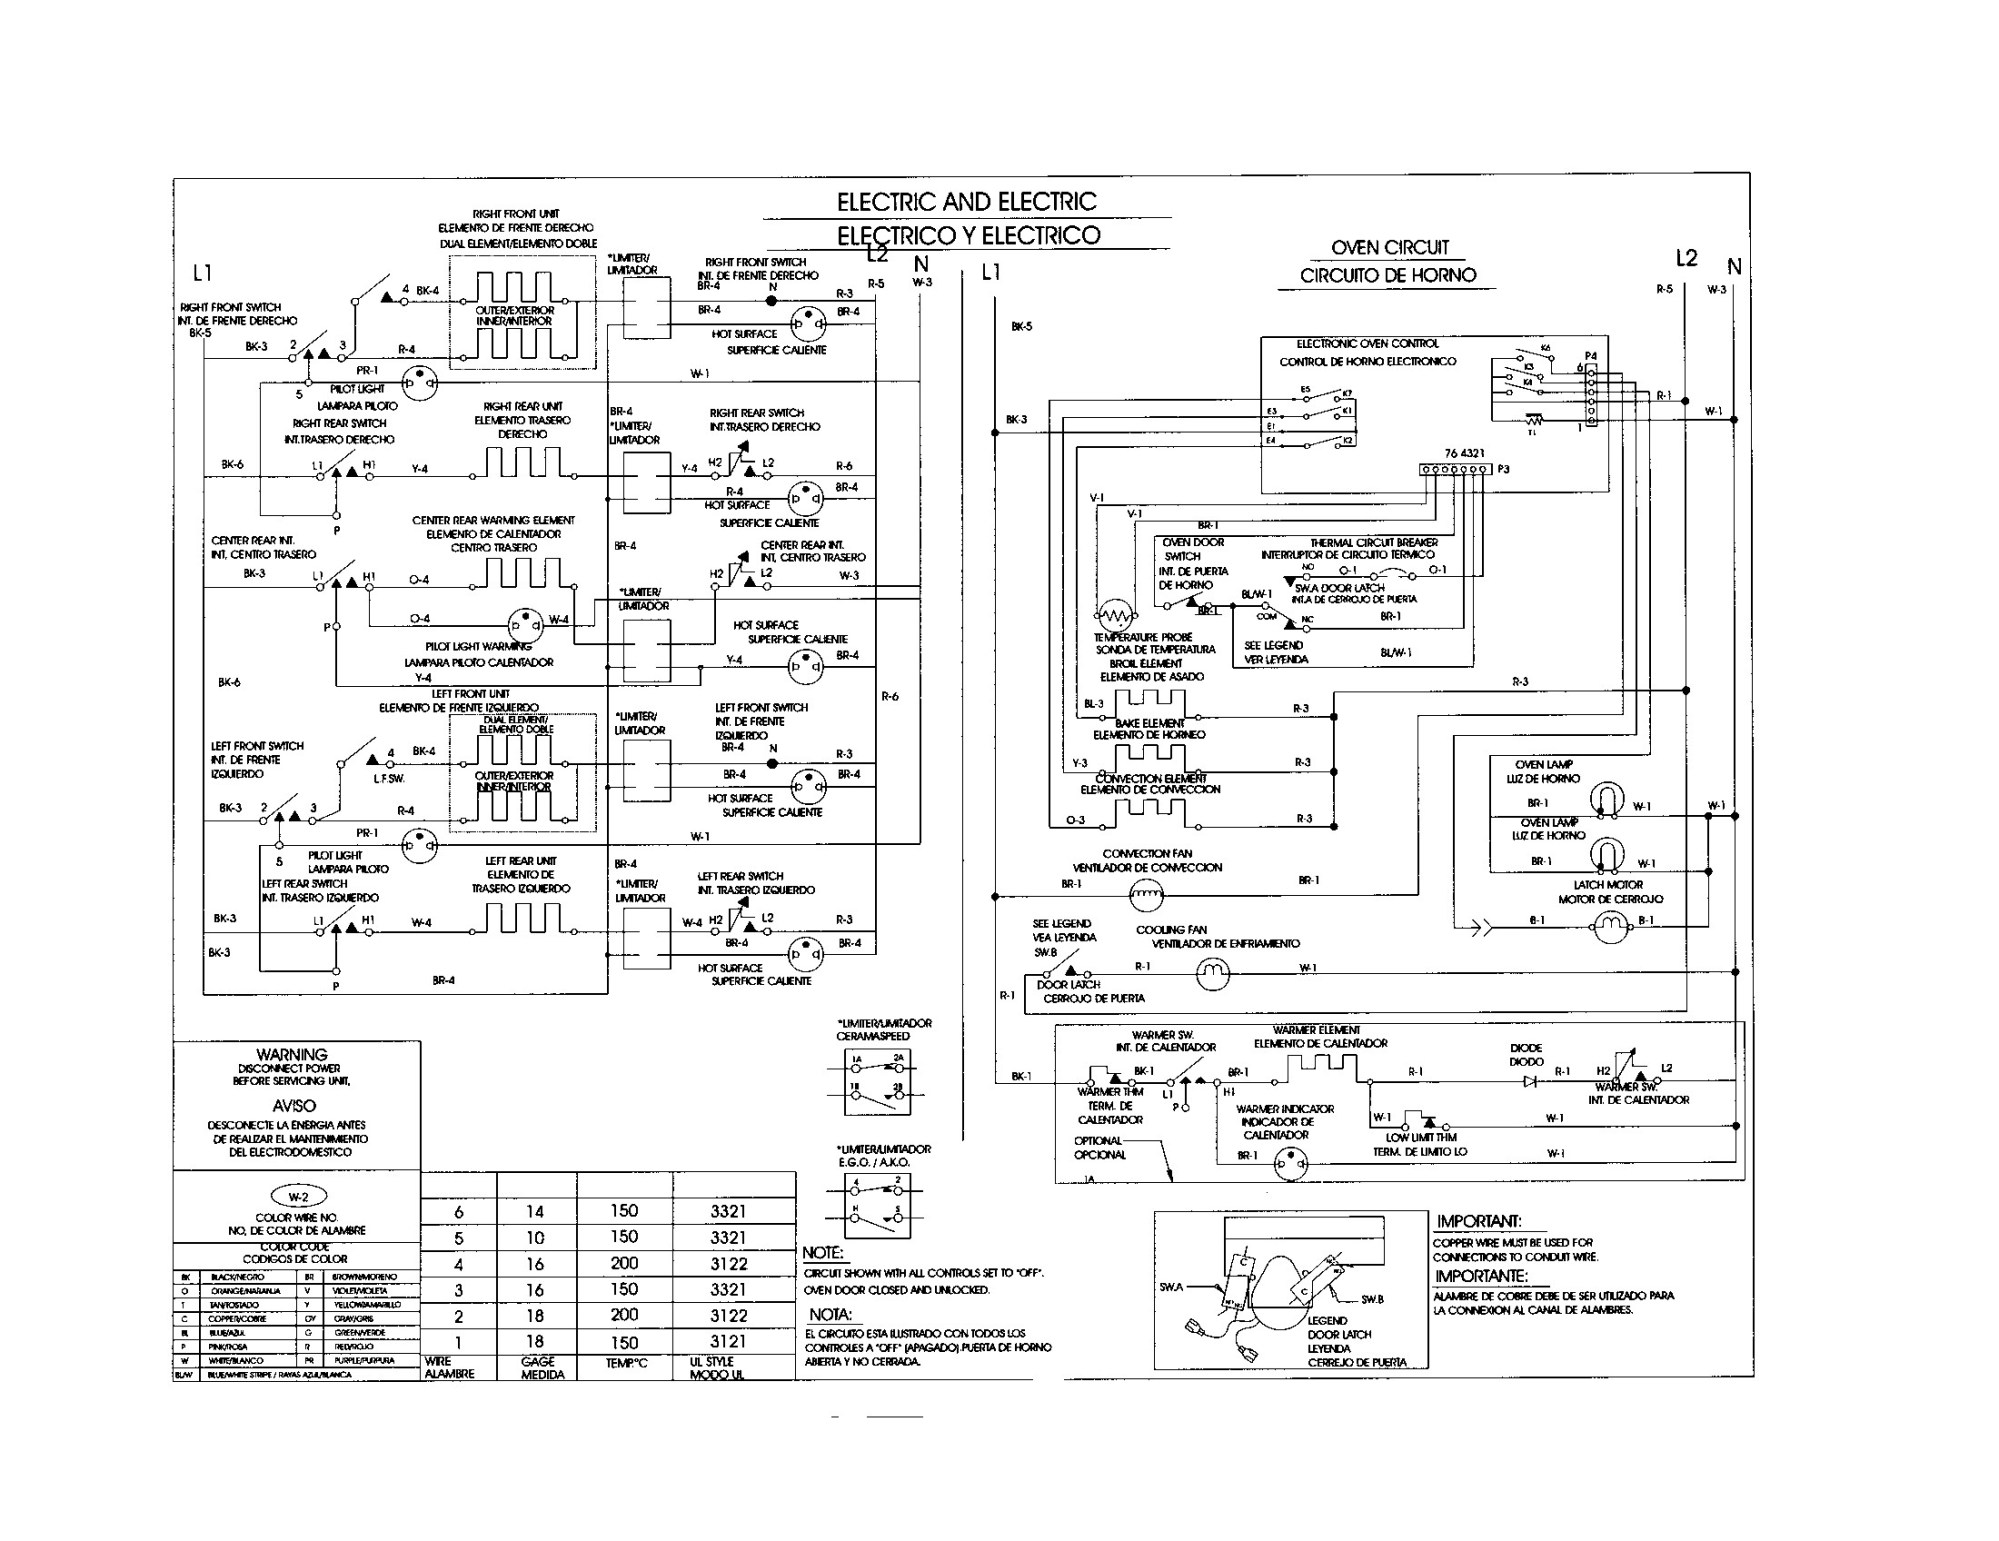 hight resolution of kenmore dryer power cord wiring diagram wiring diagram kenmore dryer reference kenmore dryer power cord